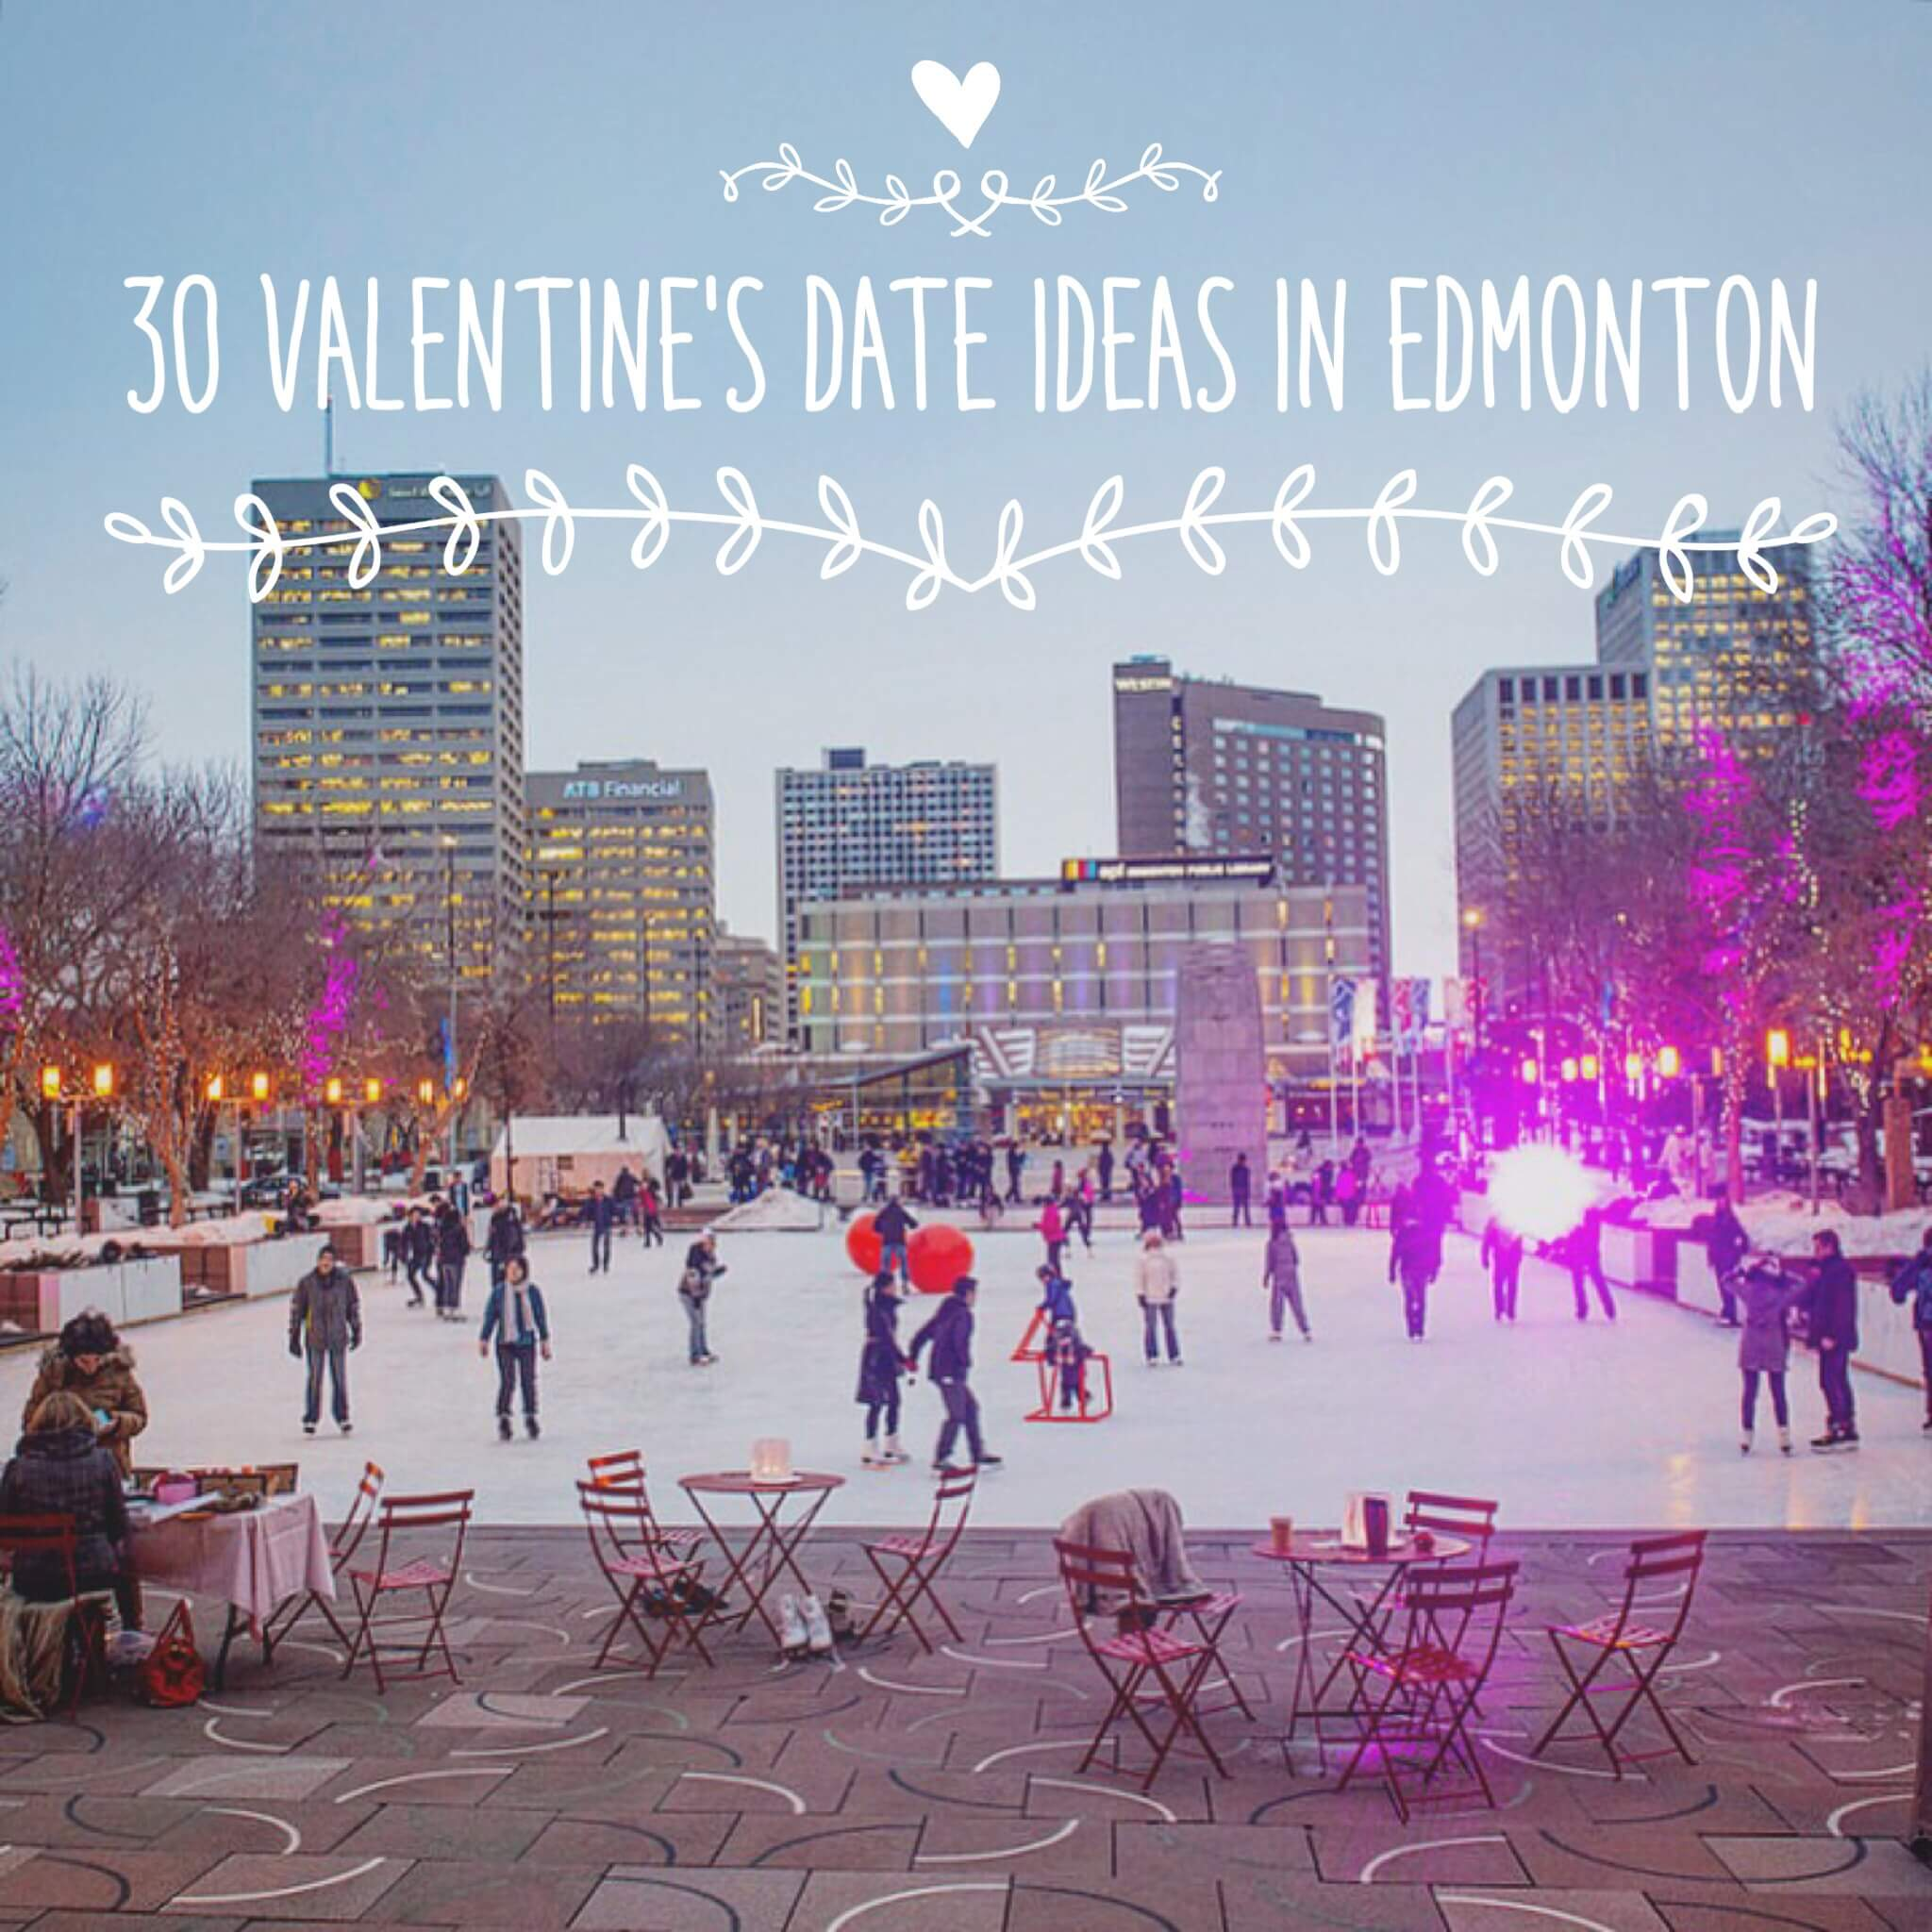 Date night ideas in edmonton